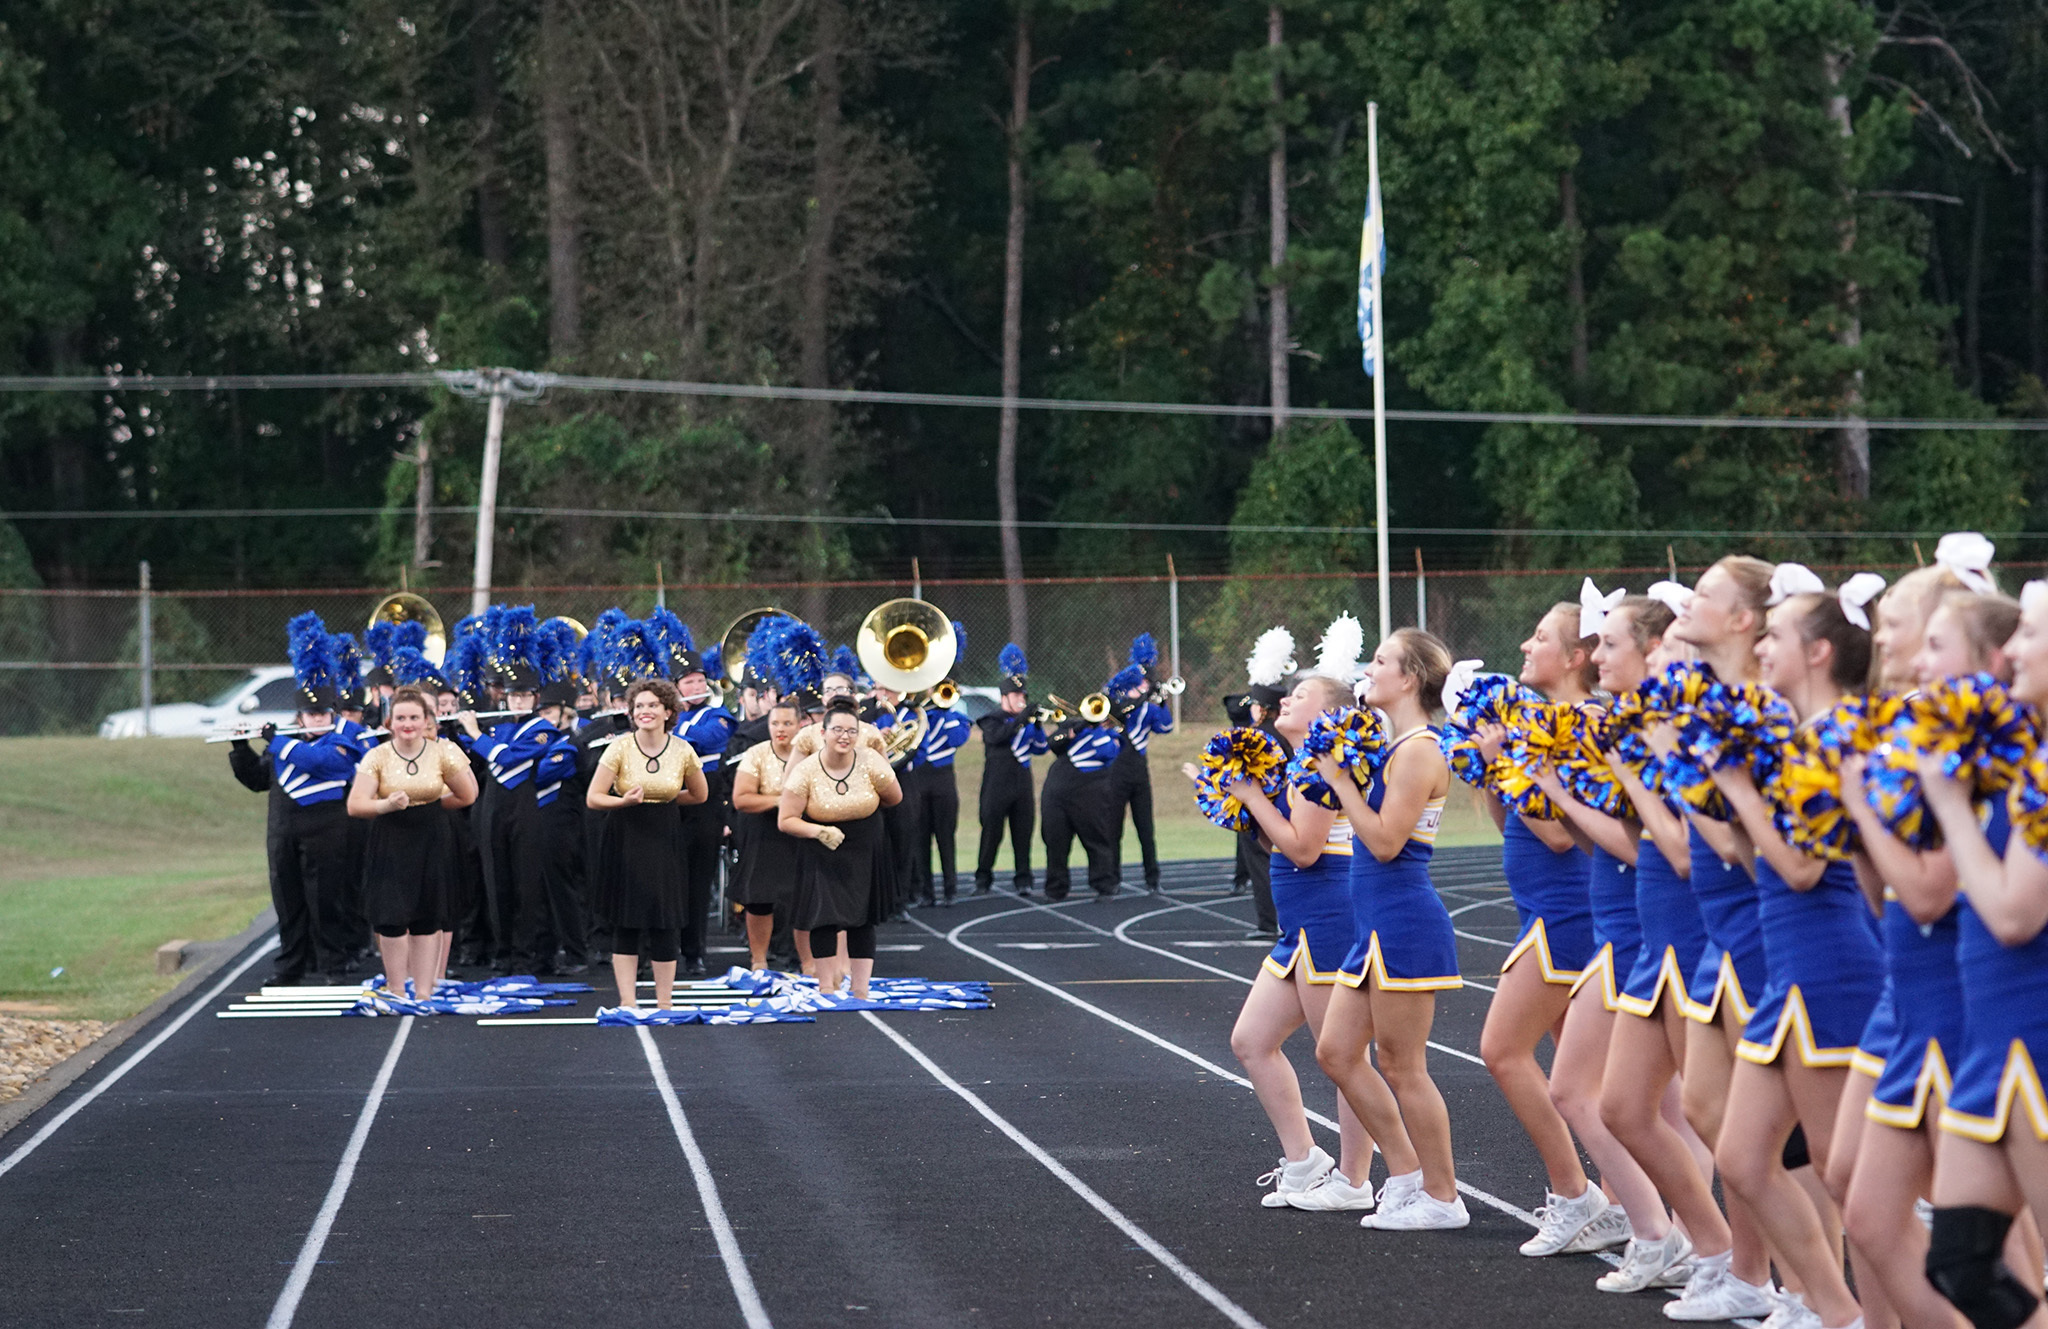 Band and Cheer together